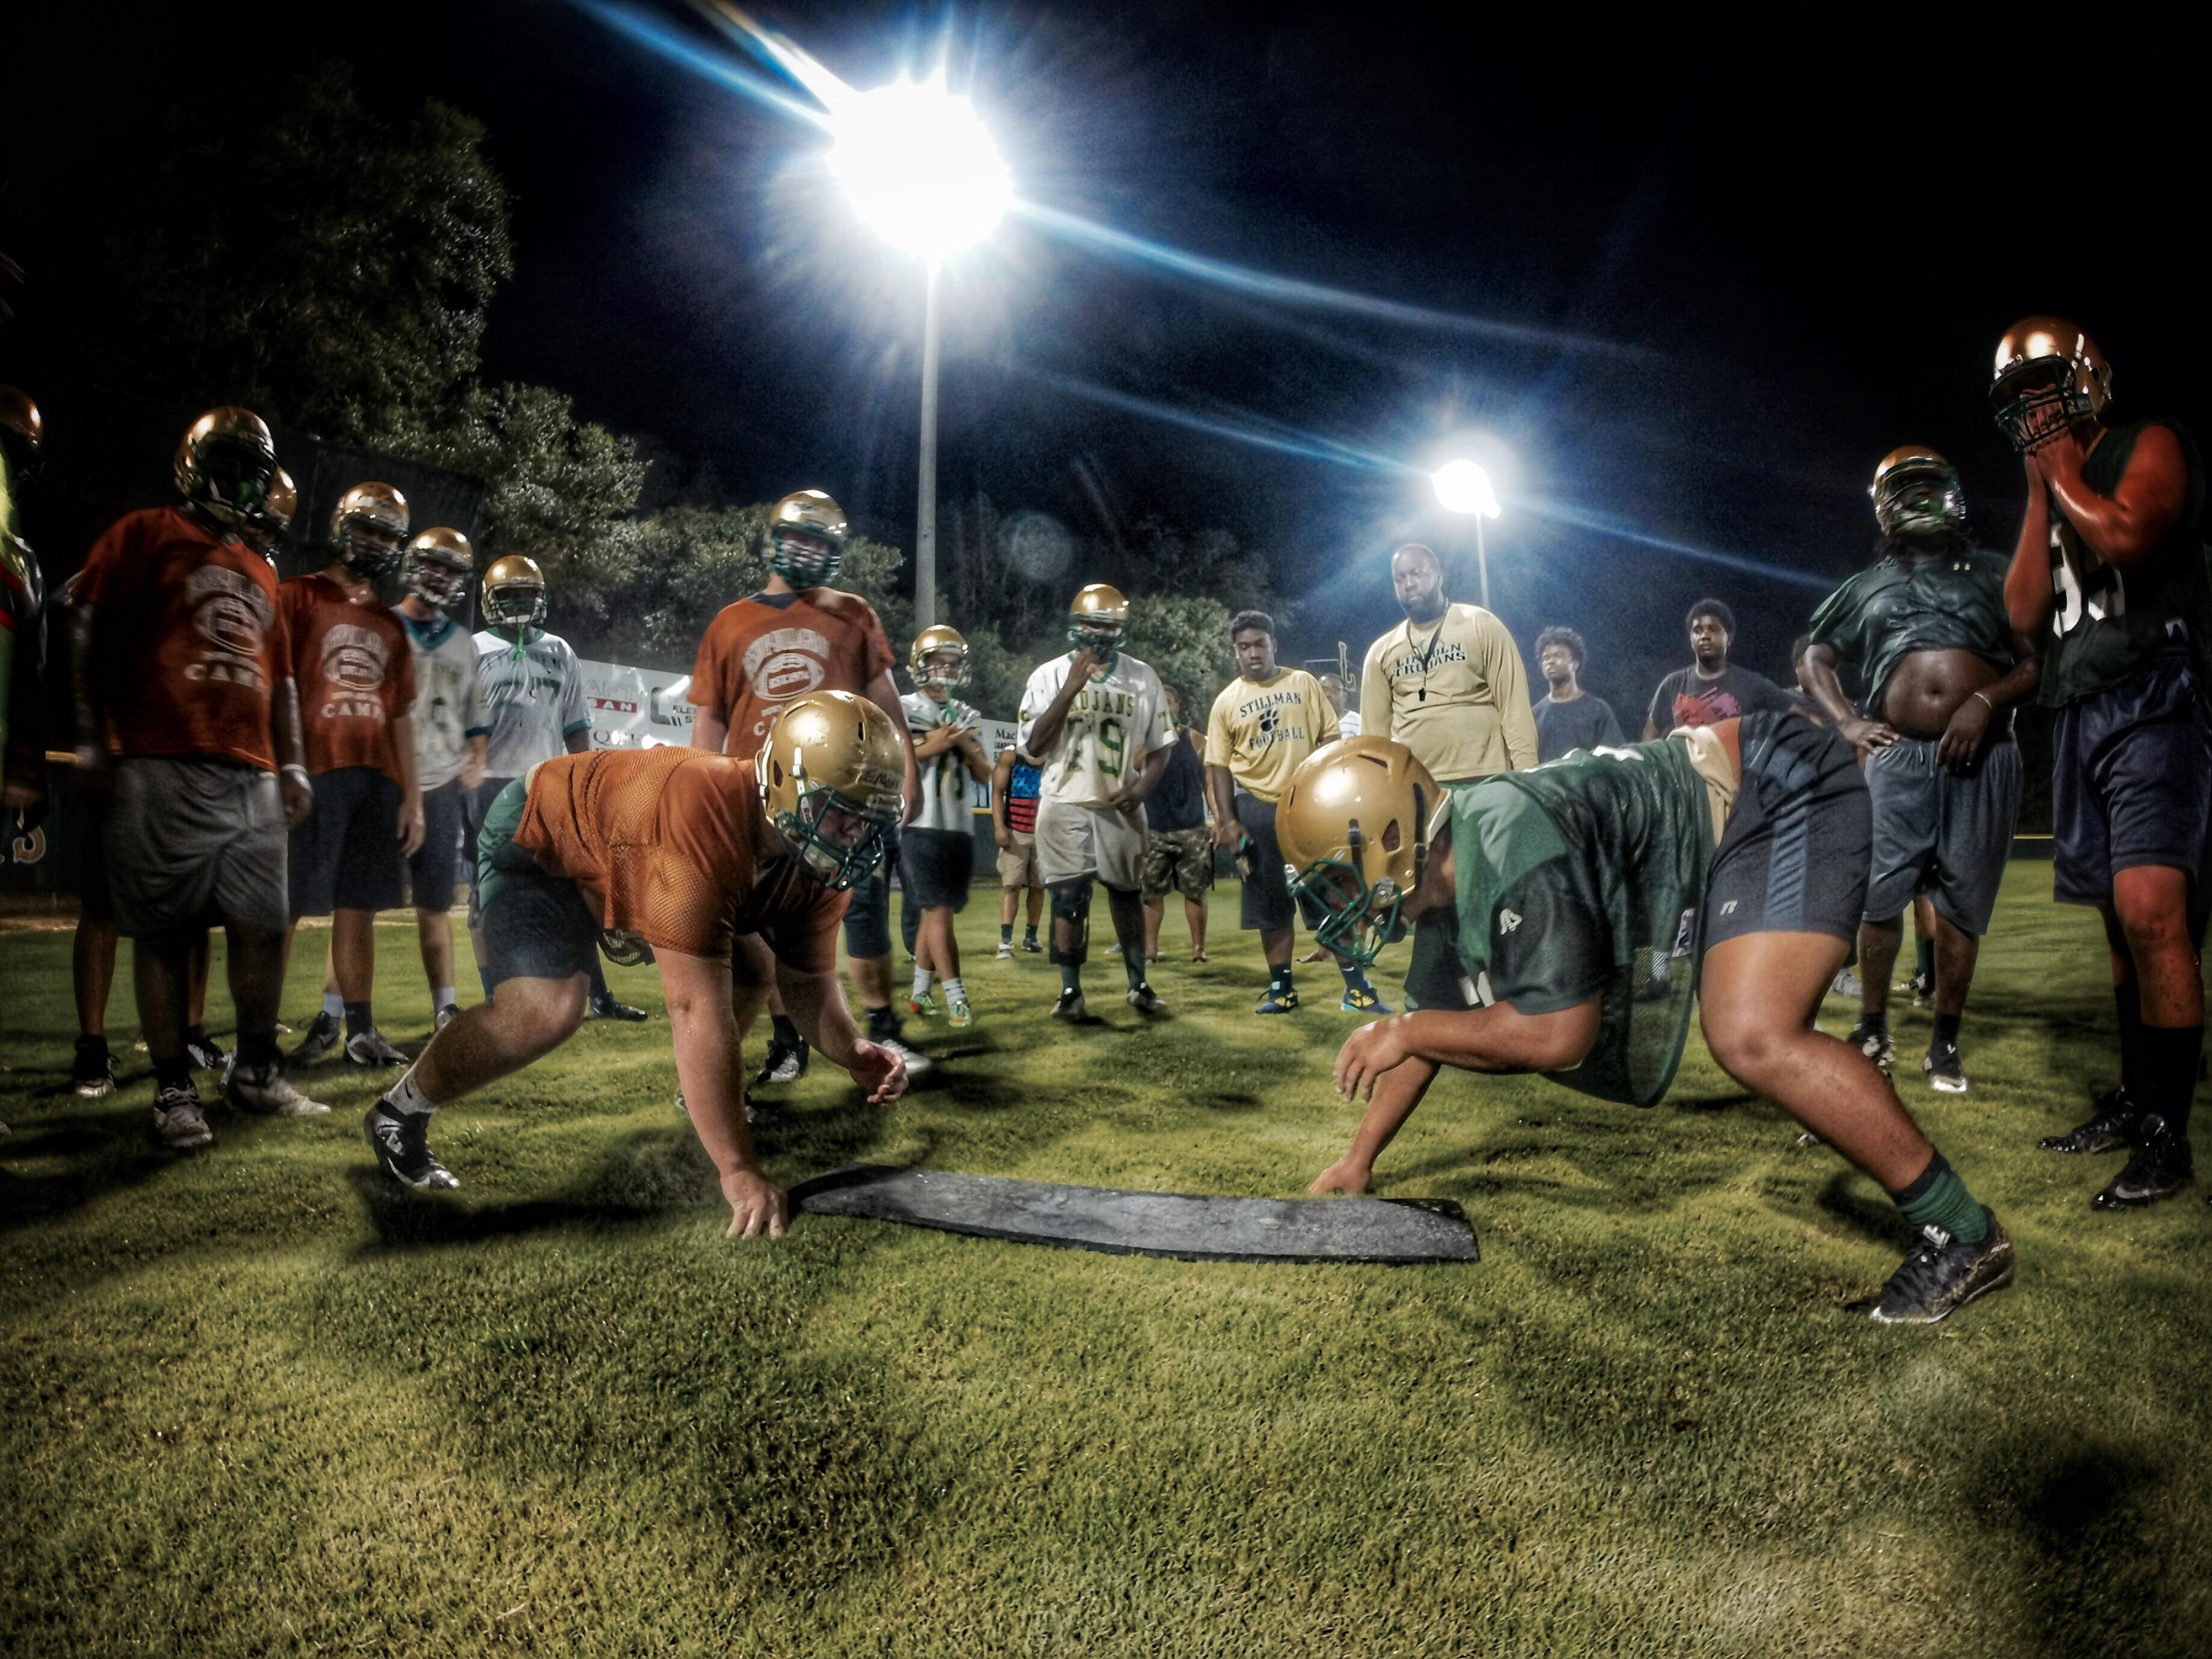 It's go time for Lincoln offensive lineman Tom Moss (left) as he gets ready for a contact drill during the Trojans' Midnight Madness practice at 12:01 a.m. on Aug. 3, 2015.